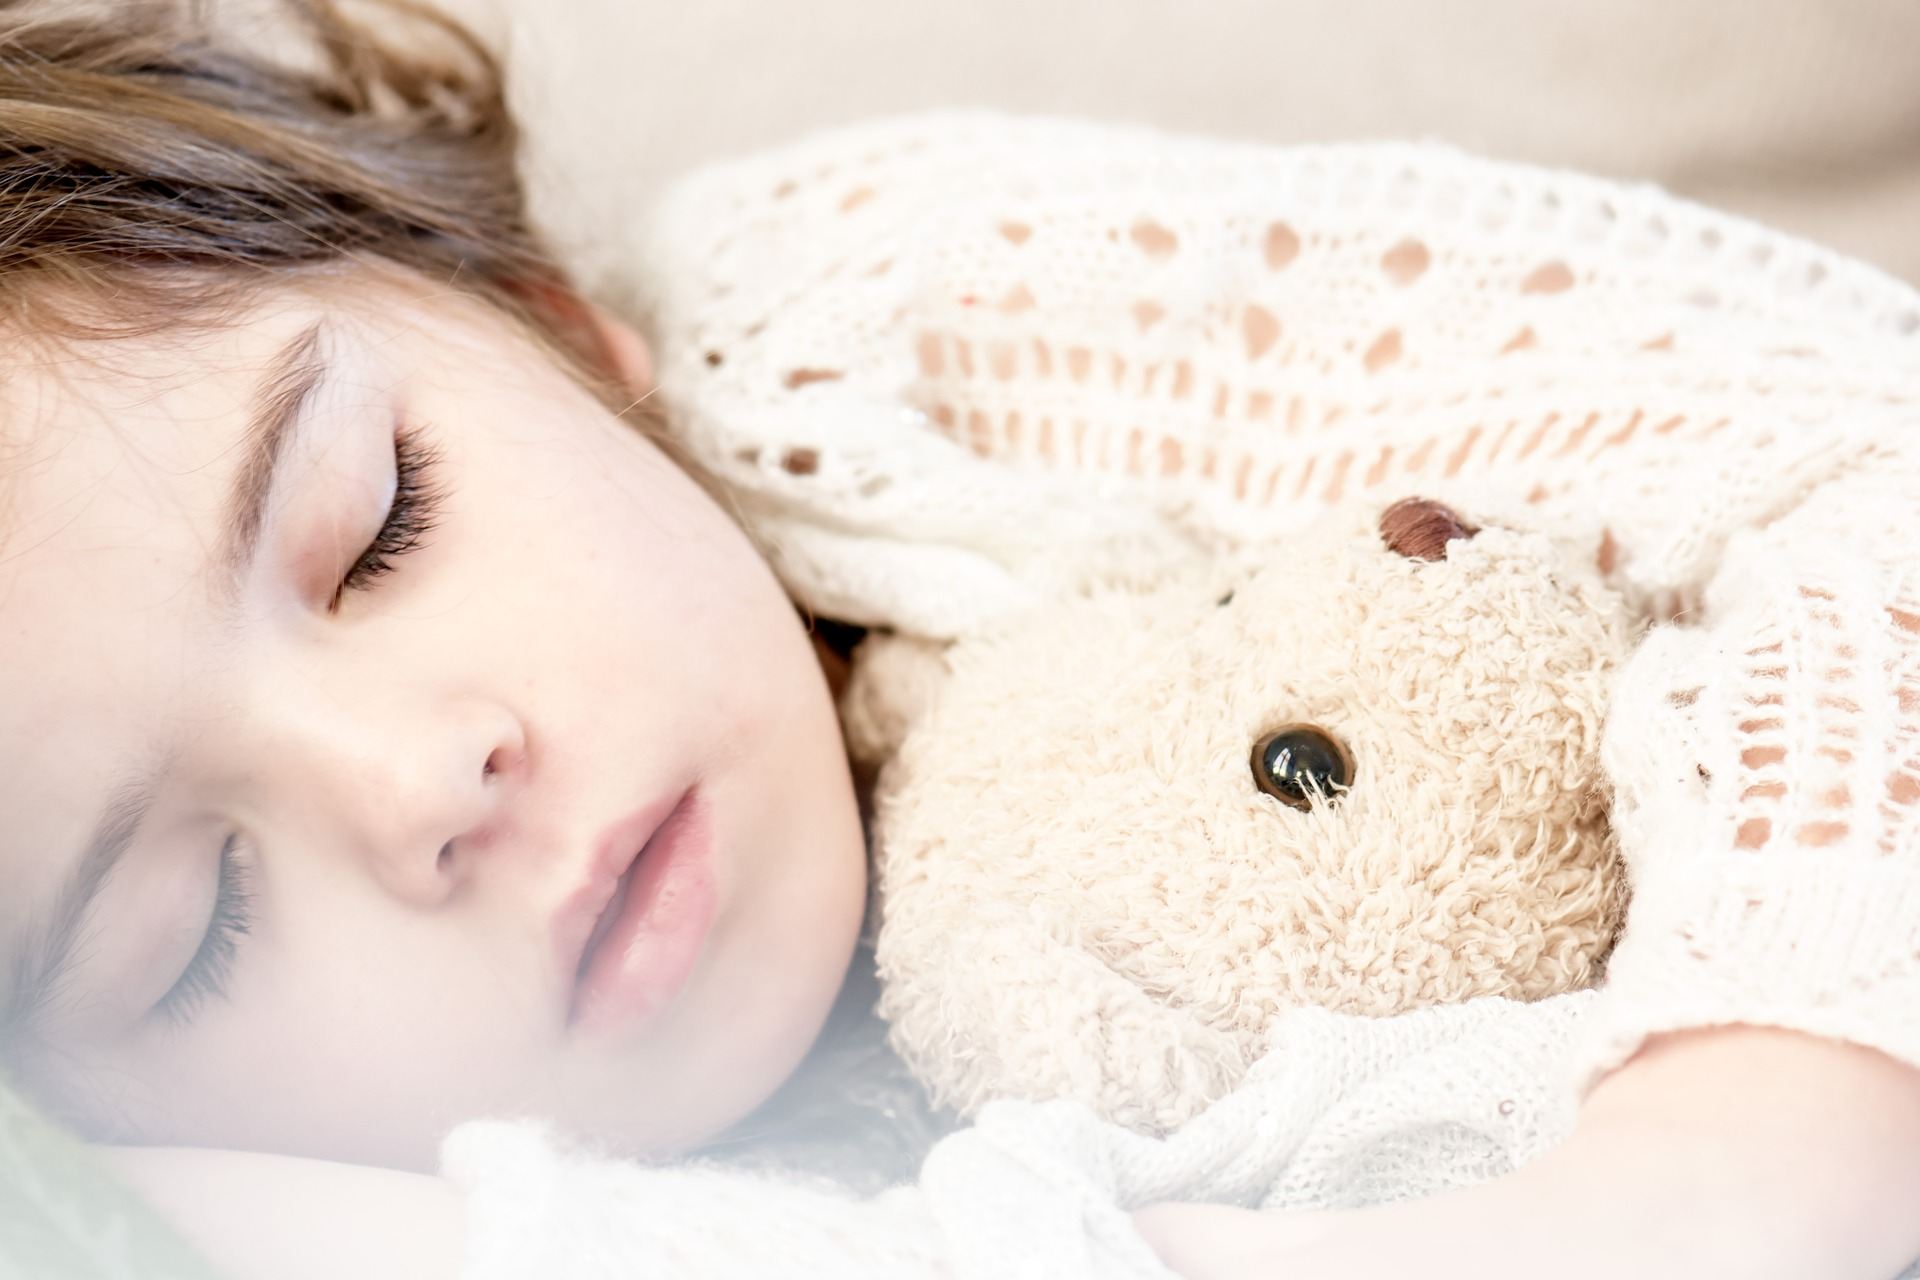 A child holding a teddy bear and sleeping.